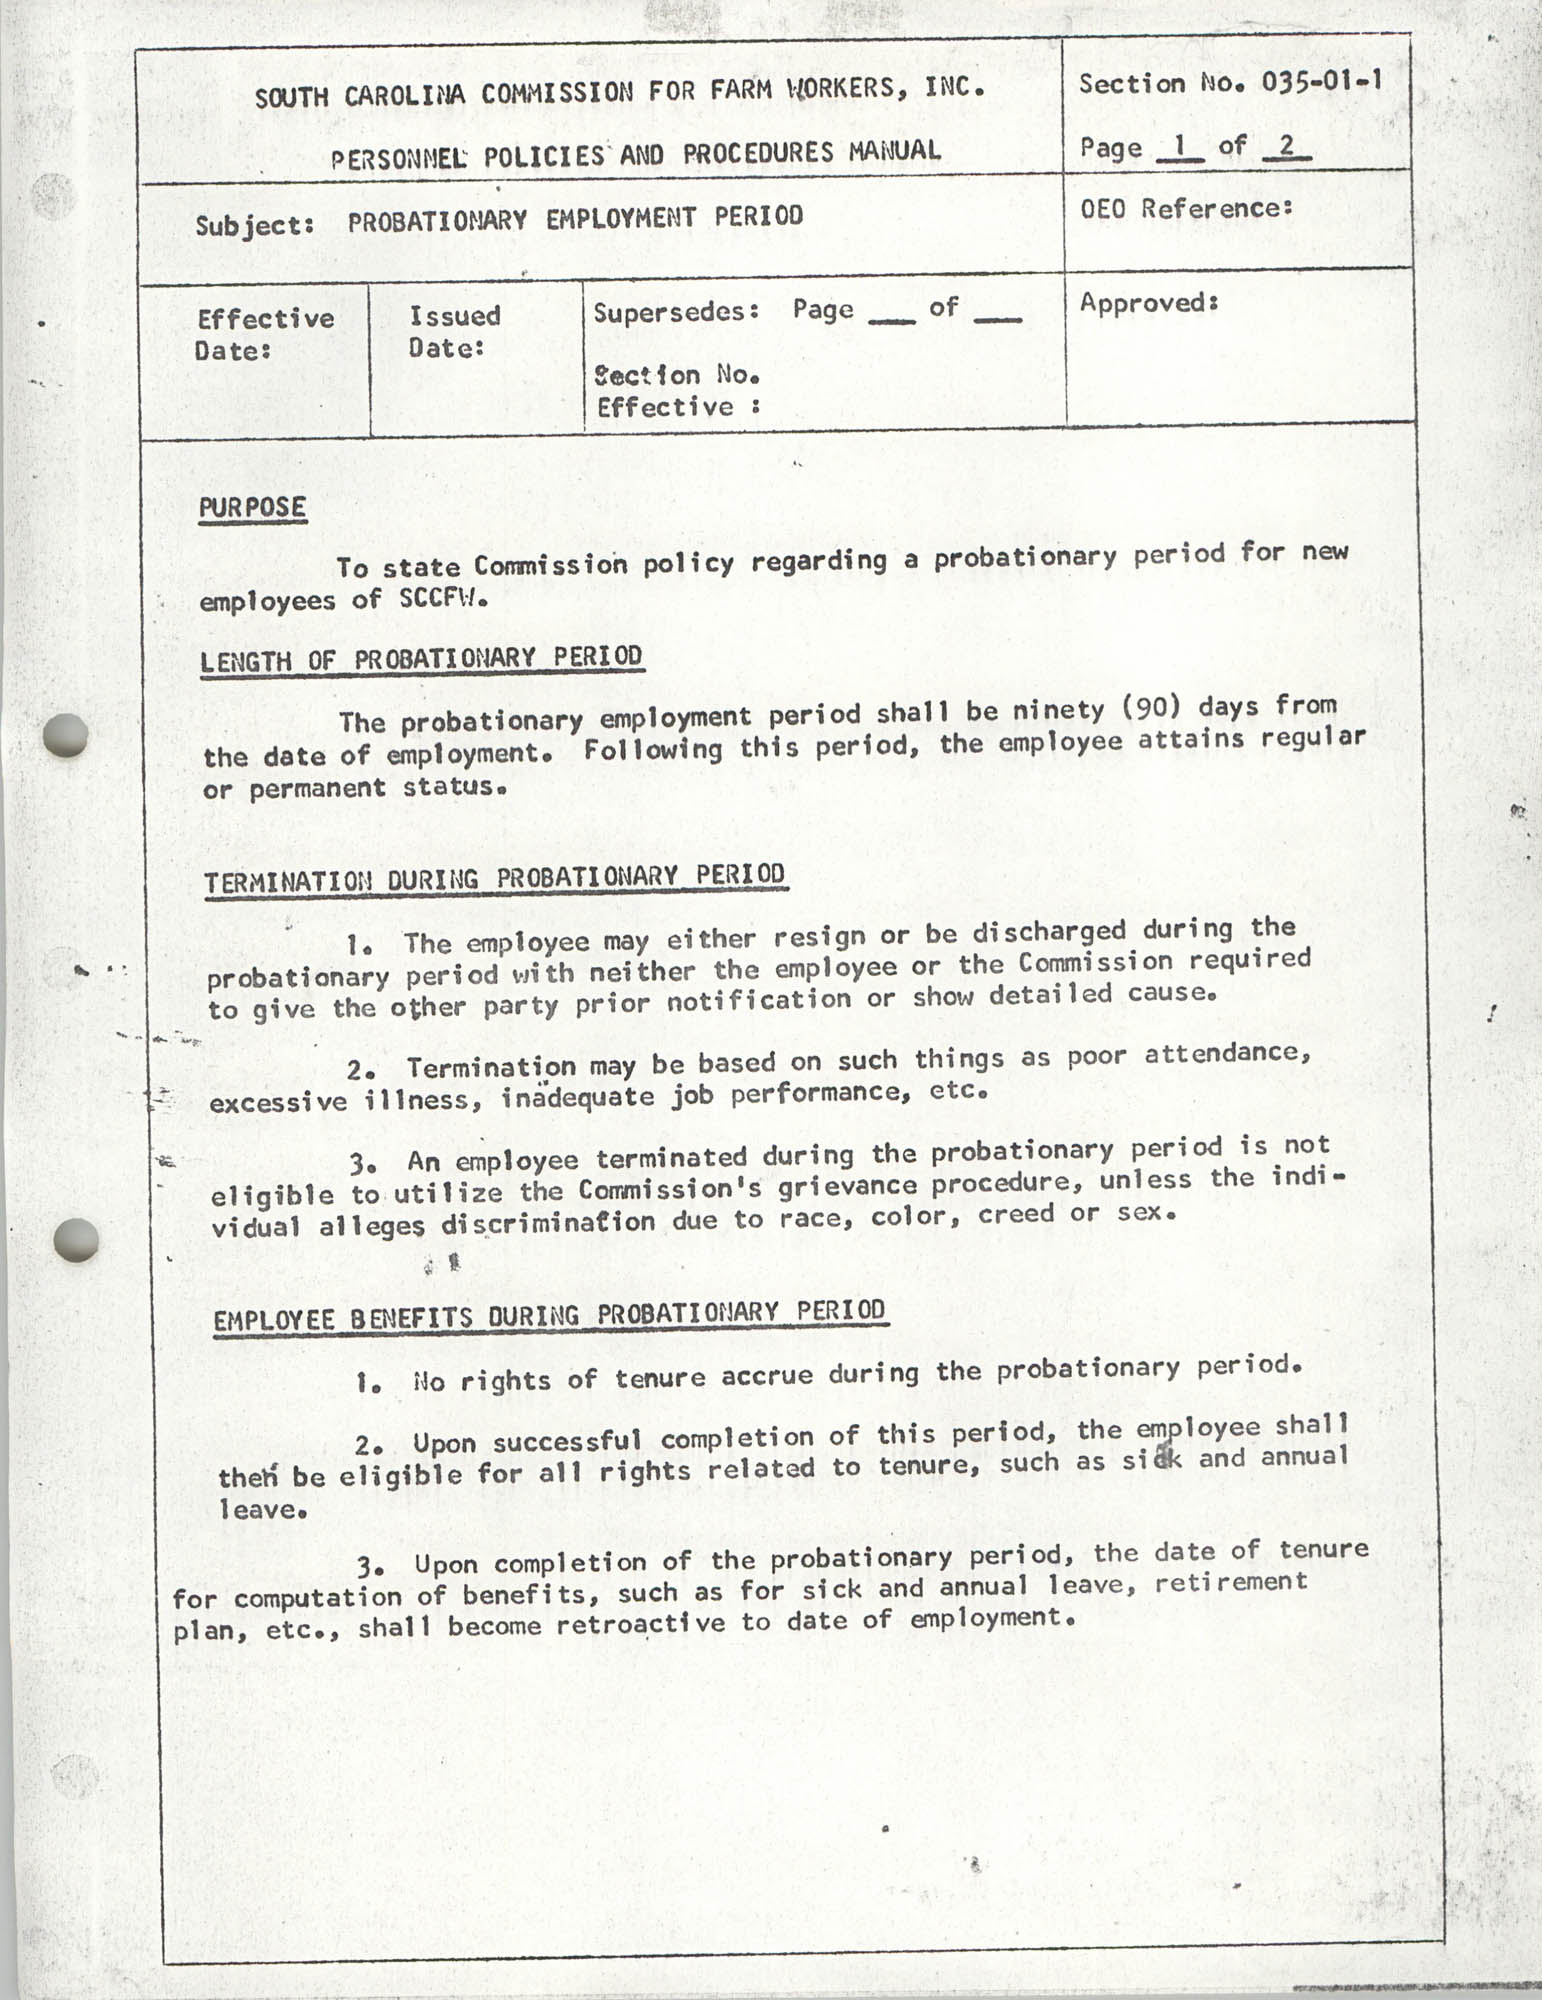 Personnel Policies and Procedures Manual, Section No. 035-01-1, Page 1